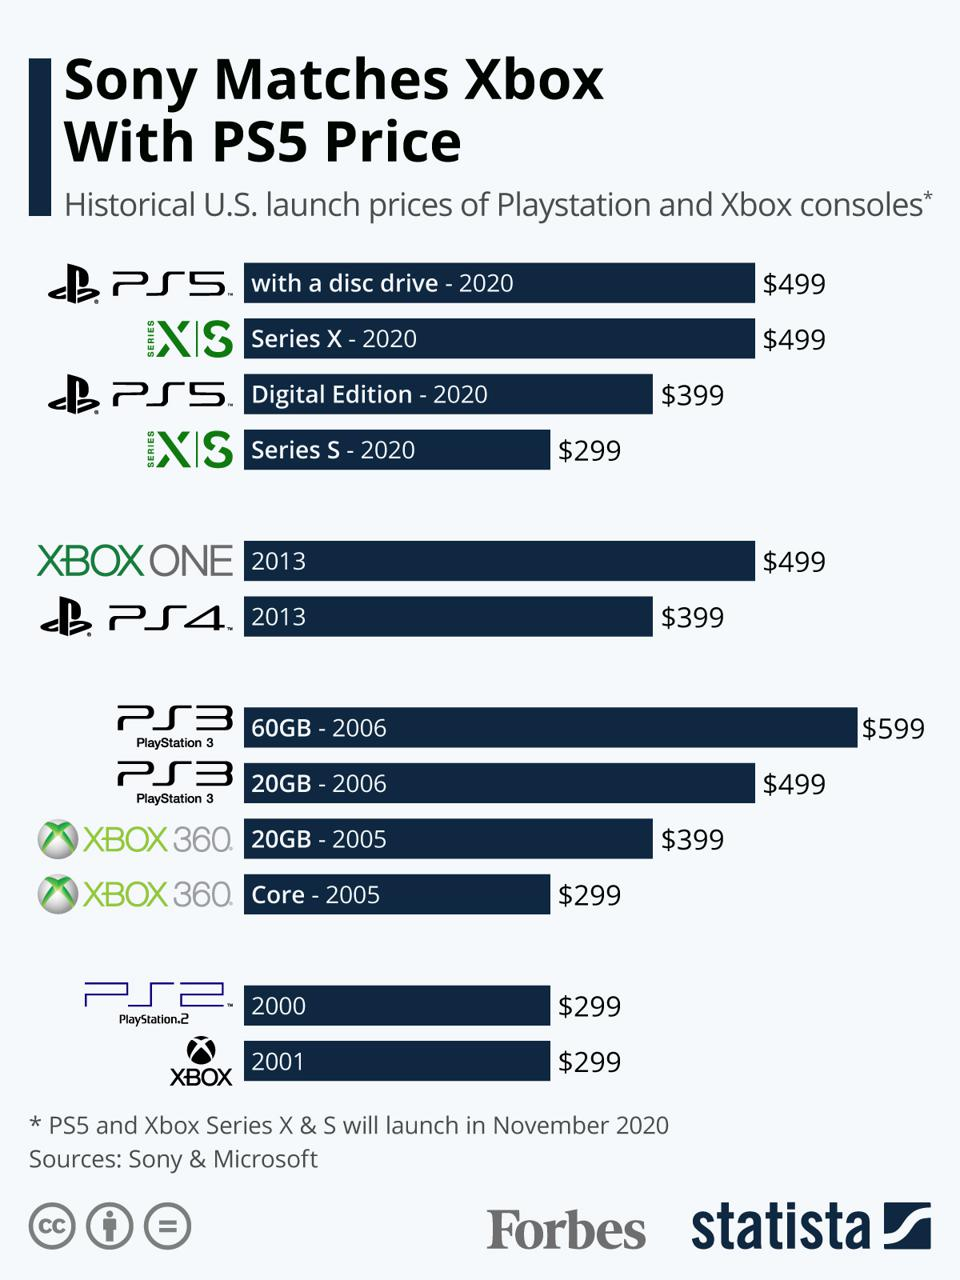 Sony Matches Xbox With PS5 Price